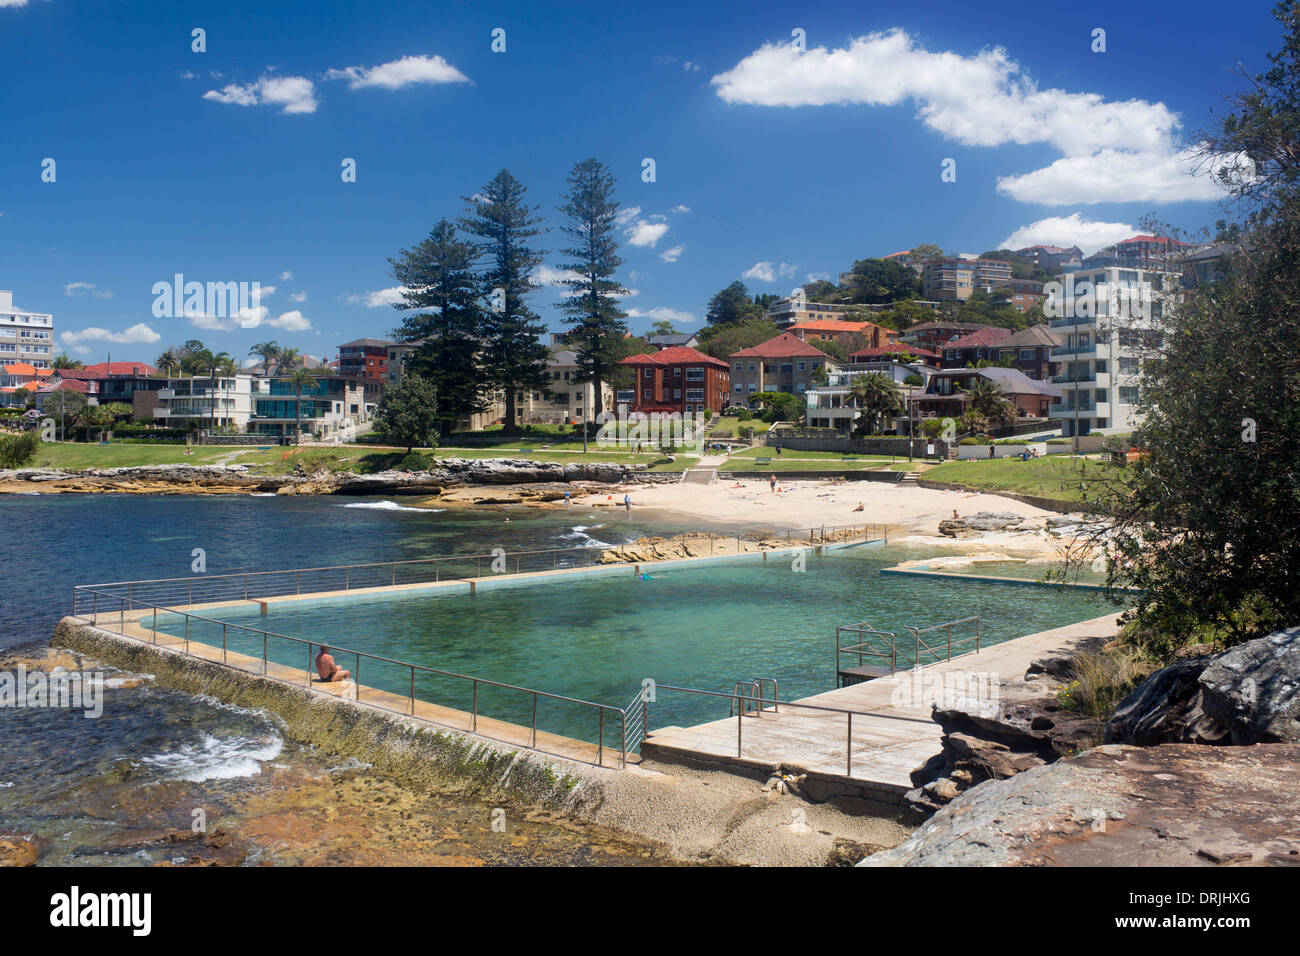 Fairlight Berach With Rock Pool Swimming Pool In Foreground Manly Stock Photo Royalty Free